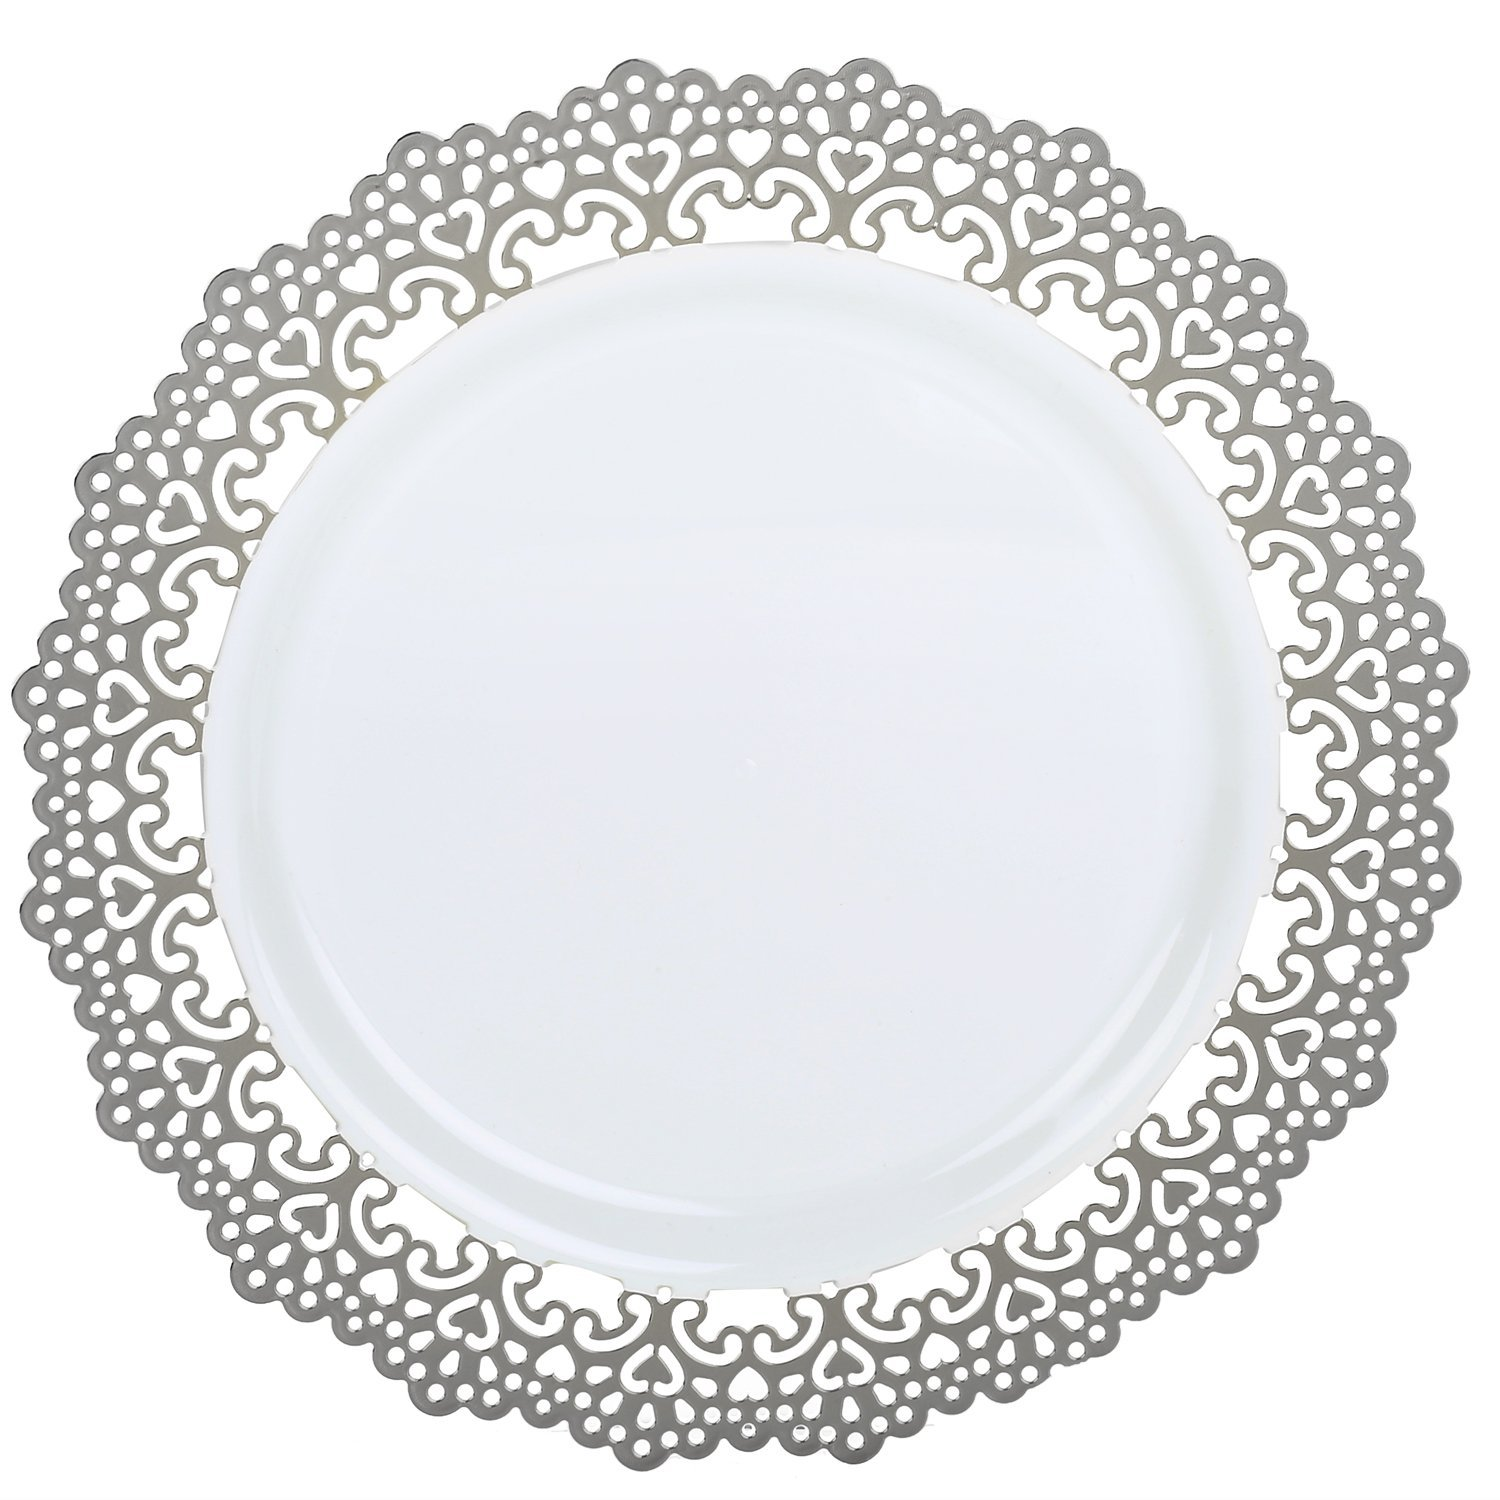 120 Piece Pack - Elegant Disposable Plastic Dinnerware - 9'' inch Buffet/Lunch/Appetizer/Dessert/Salad Party Plates - Silver Lace Trim by PartyPiks (Image #3)